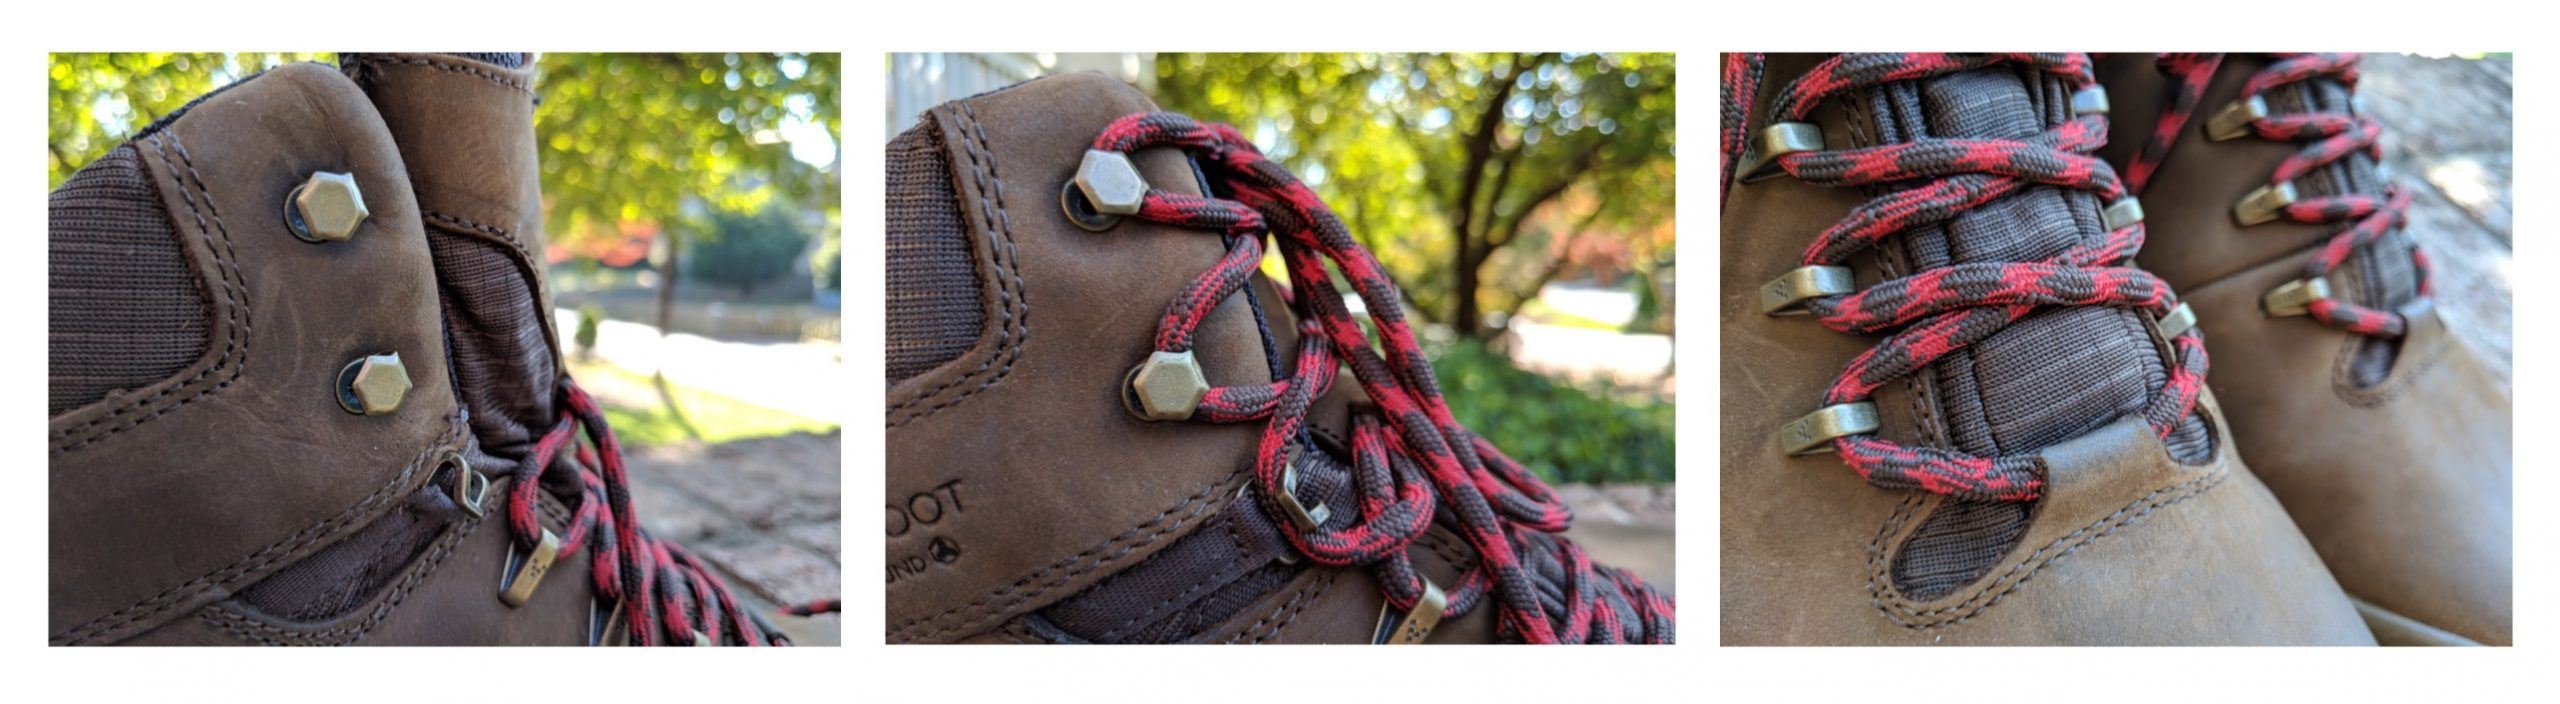 Lacing hooks! Functionally awesome—just not built for speed.